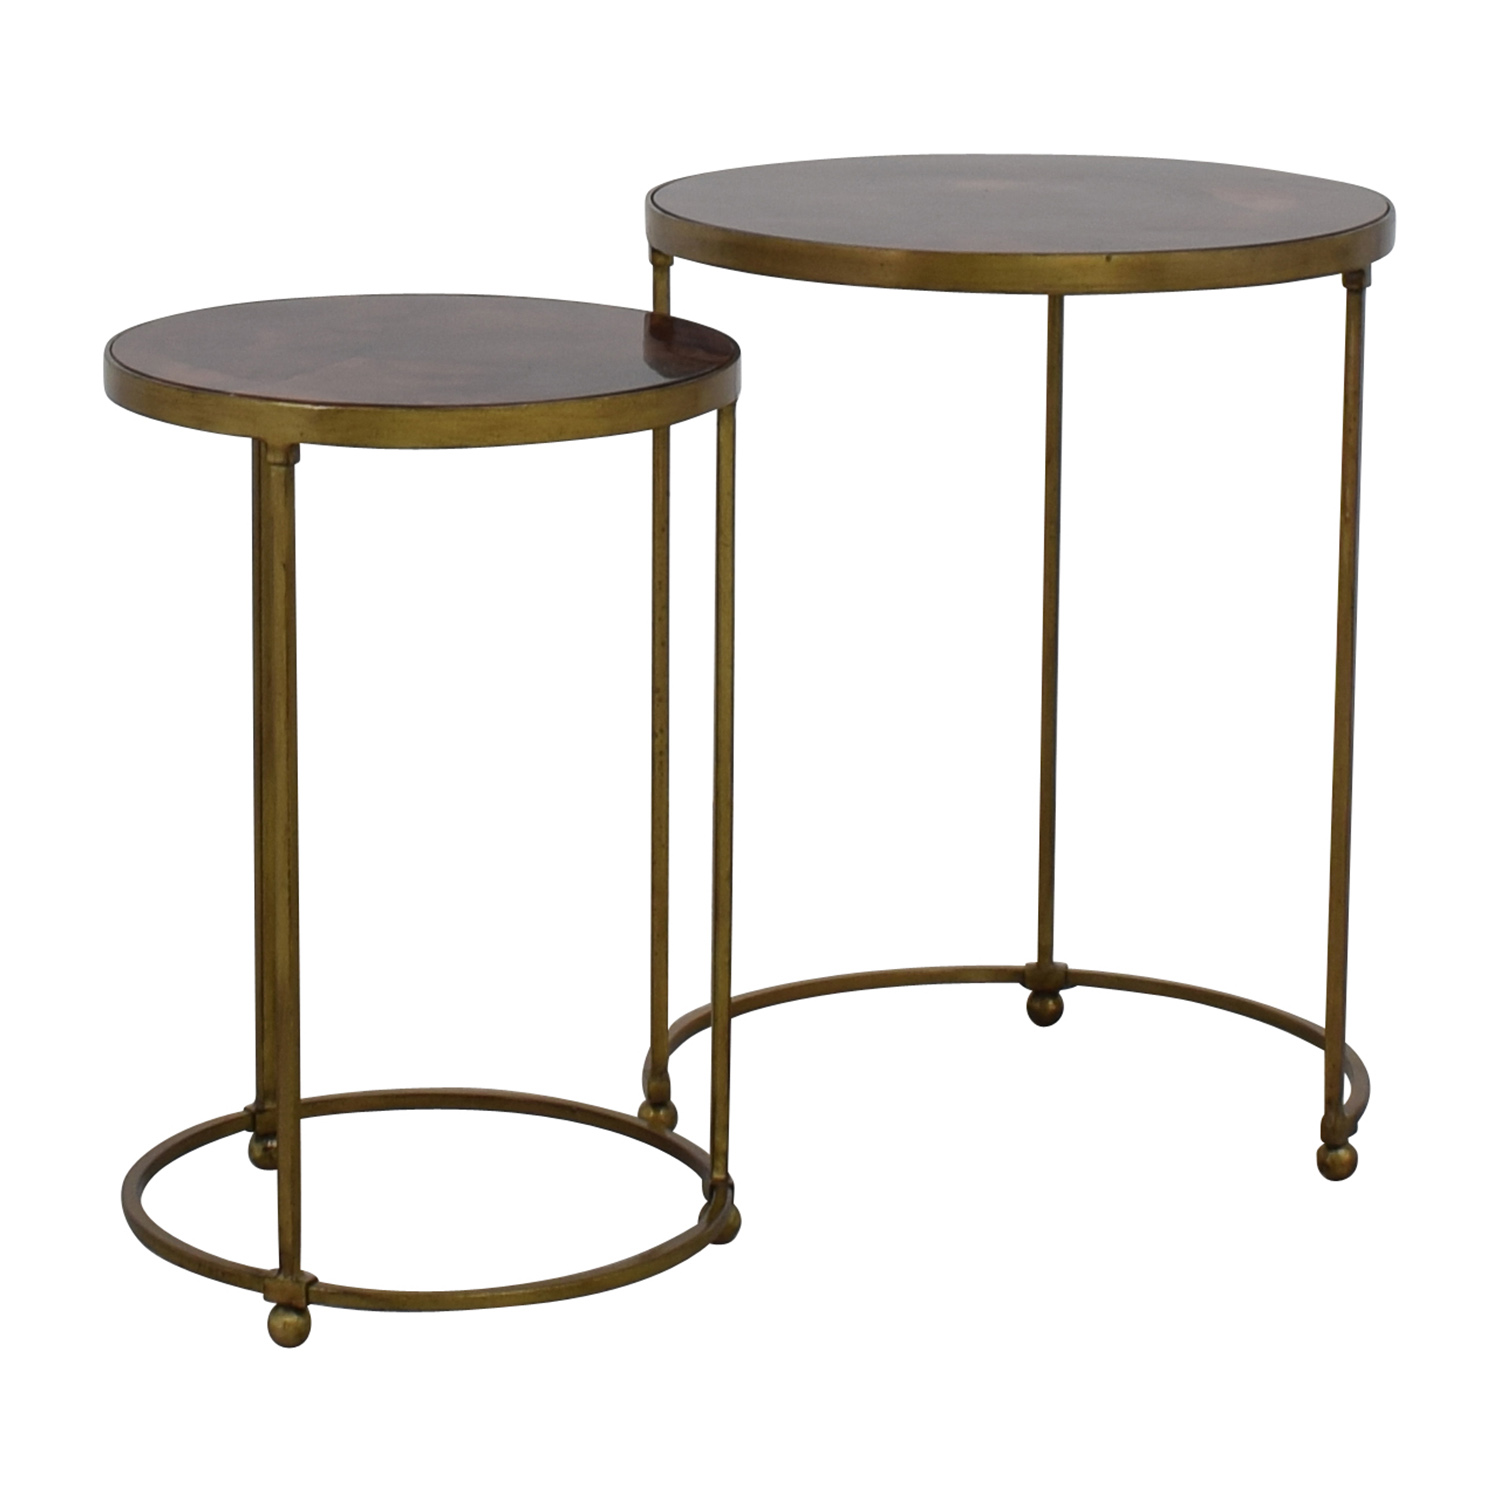 off carpet and home nesting round bronze brass accent tables table drop leaf coffee kitchen chairs exterior door threshold oak nightstand compact dining set black with drawers